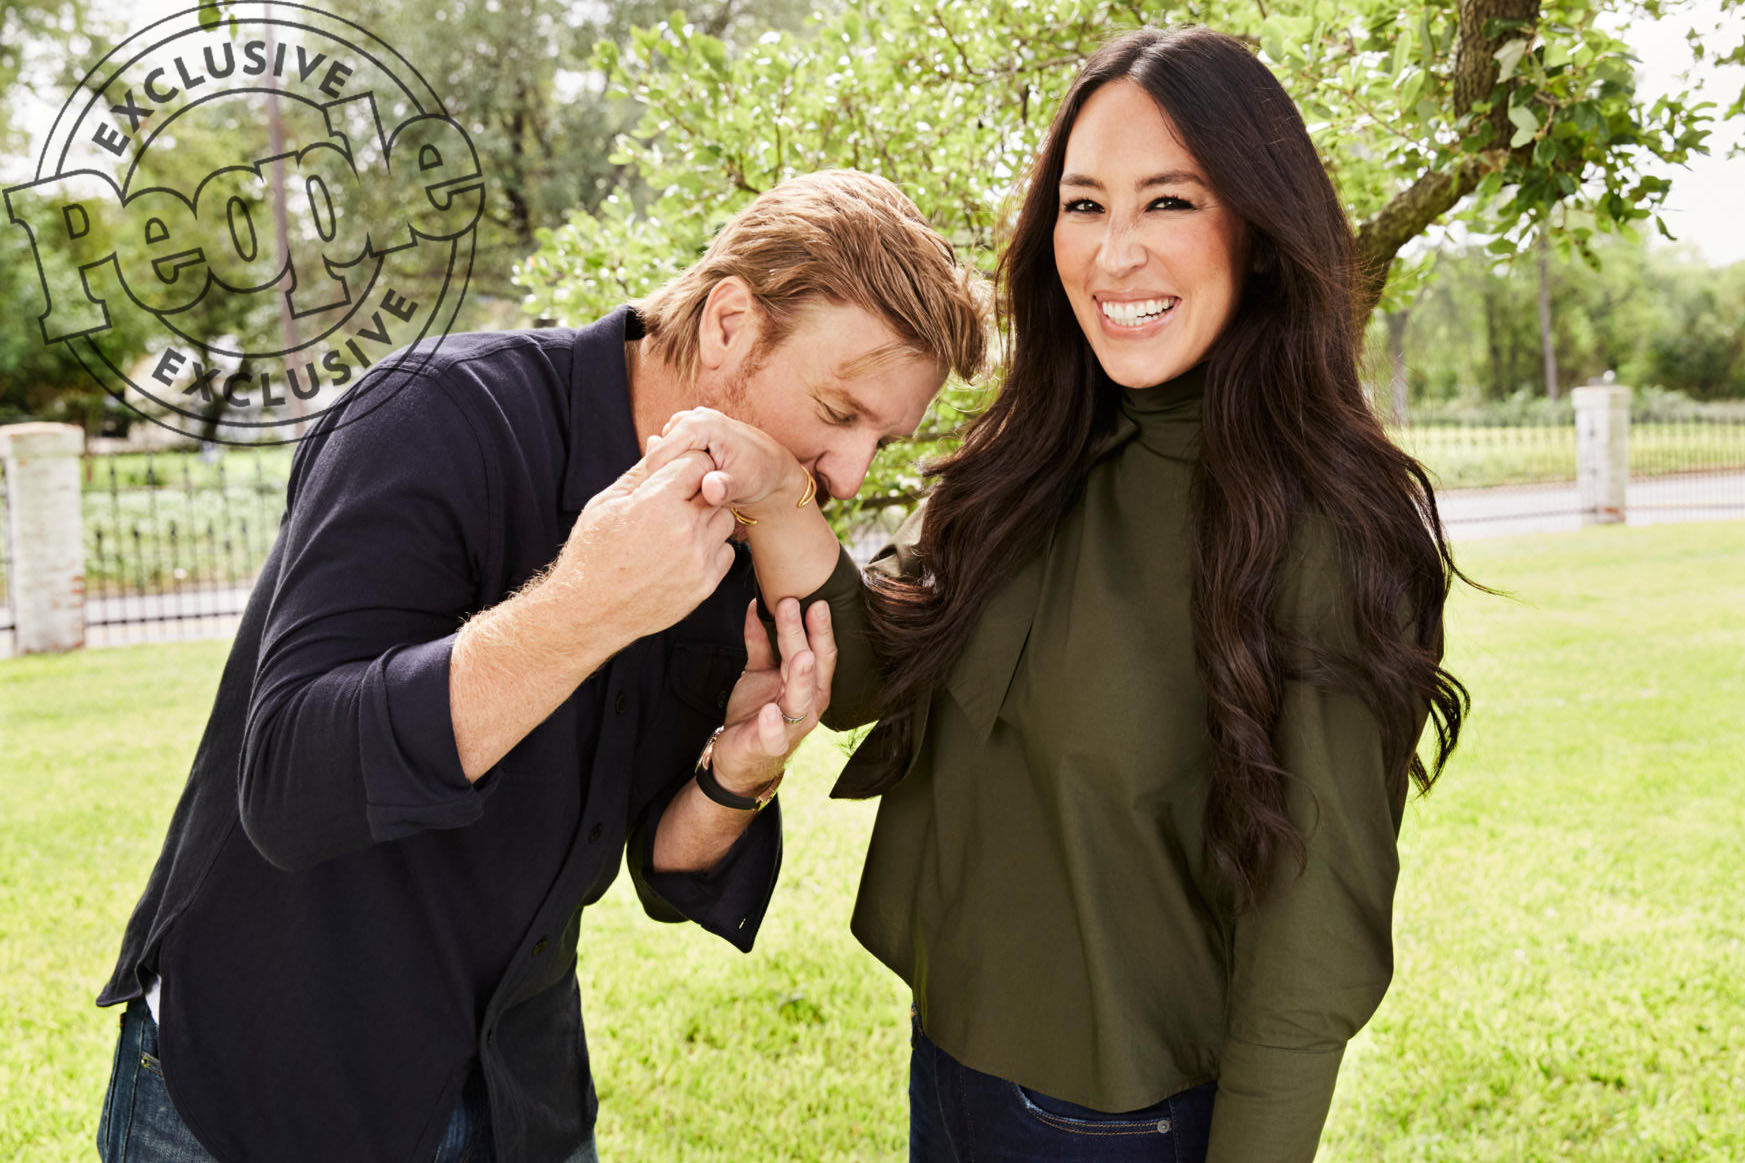 Chip Gaines on He and Wife Joanna Having Another Baby: 'Don't Be Surprised If No. 6 Is in the Cards!'